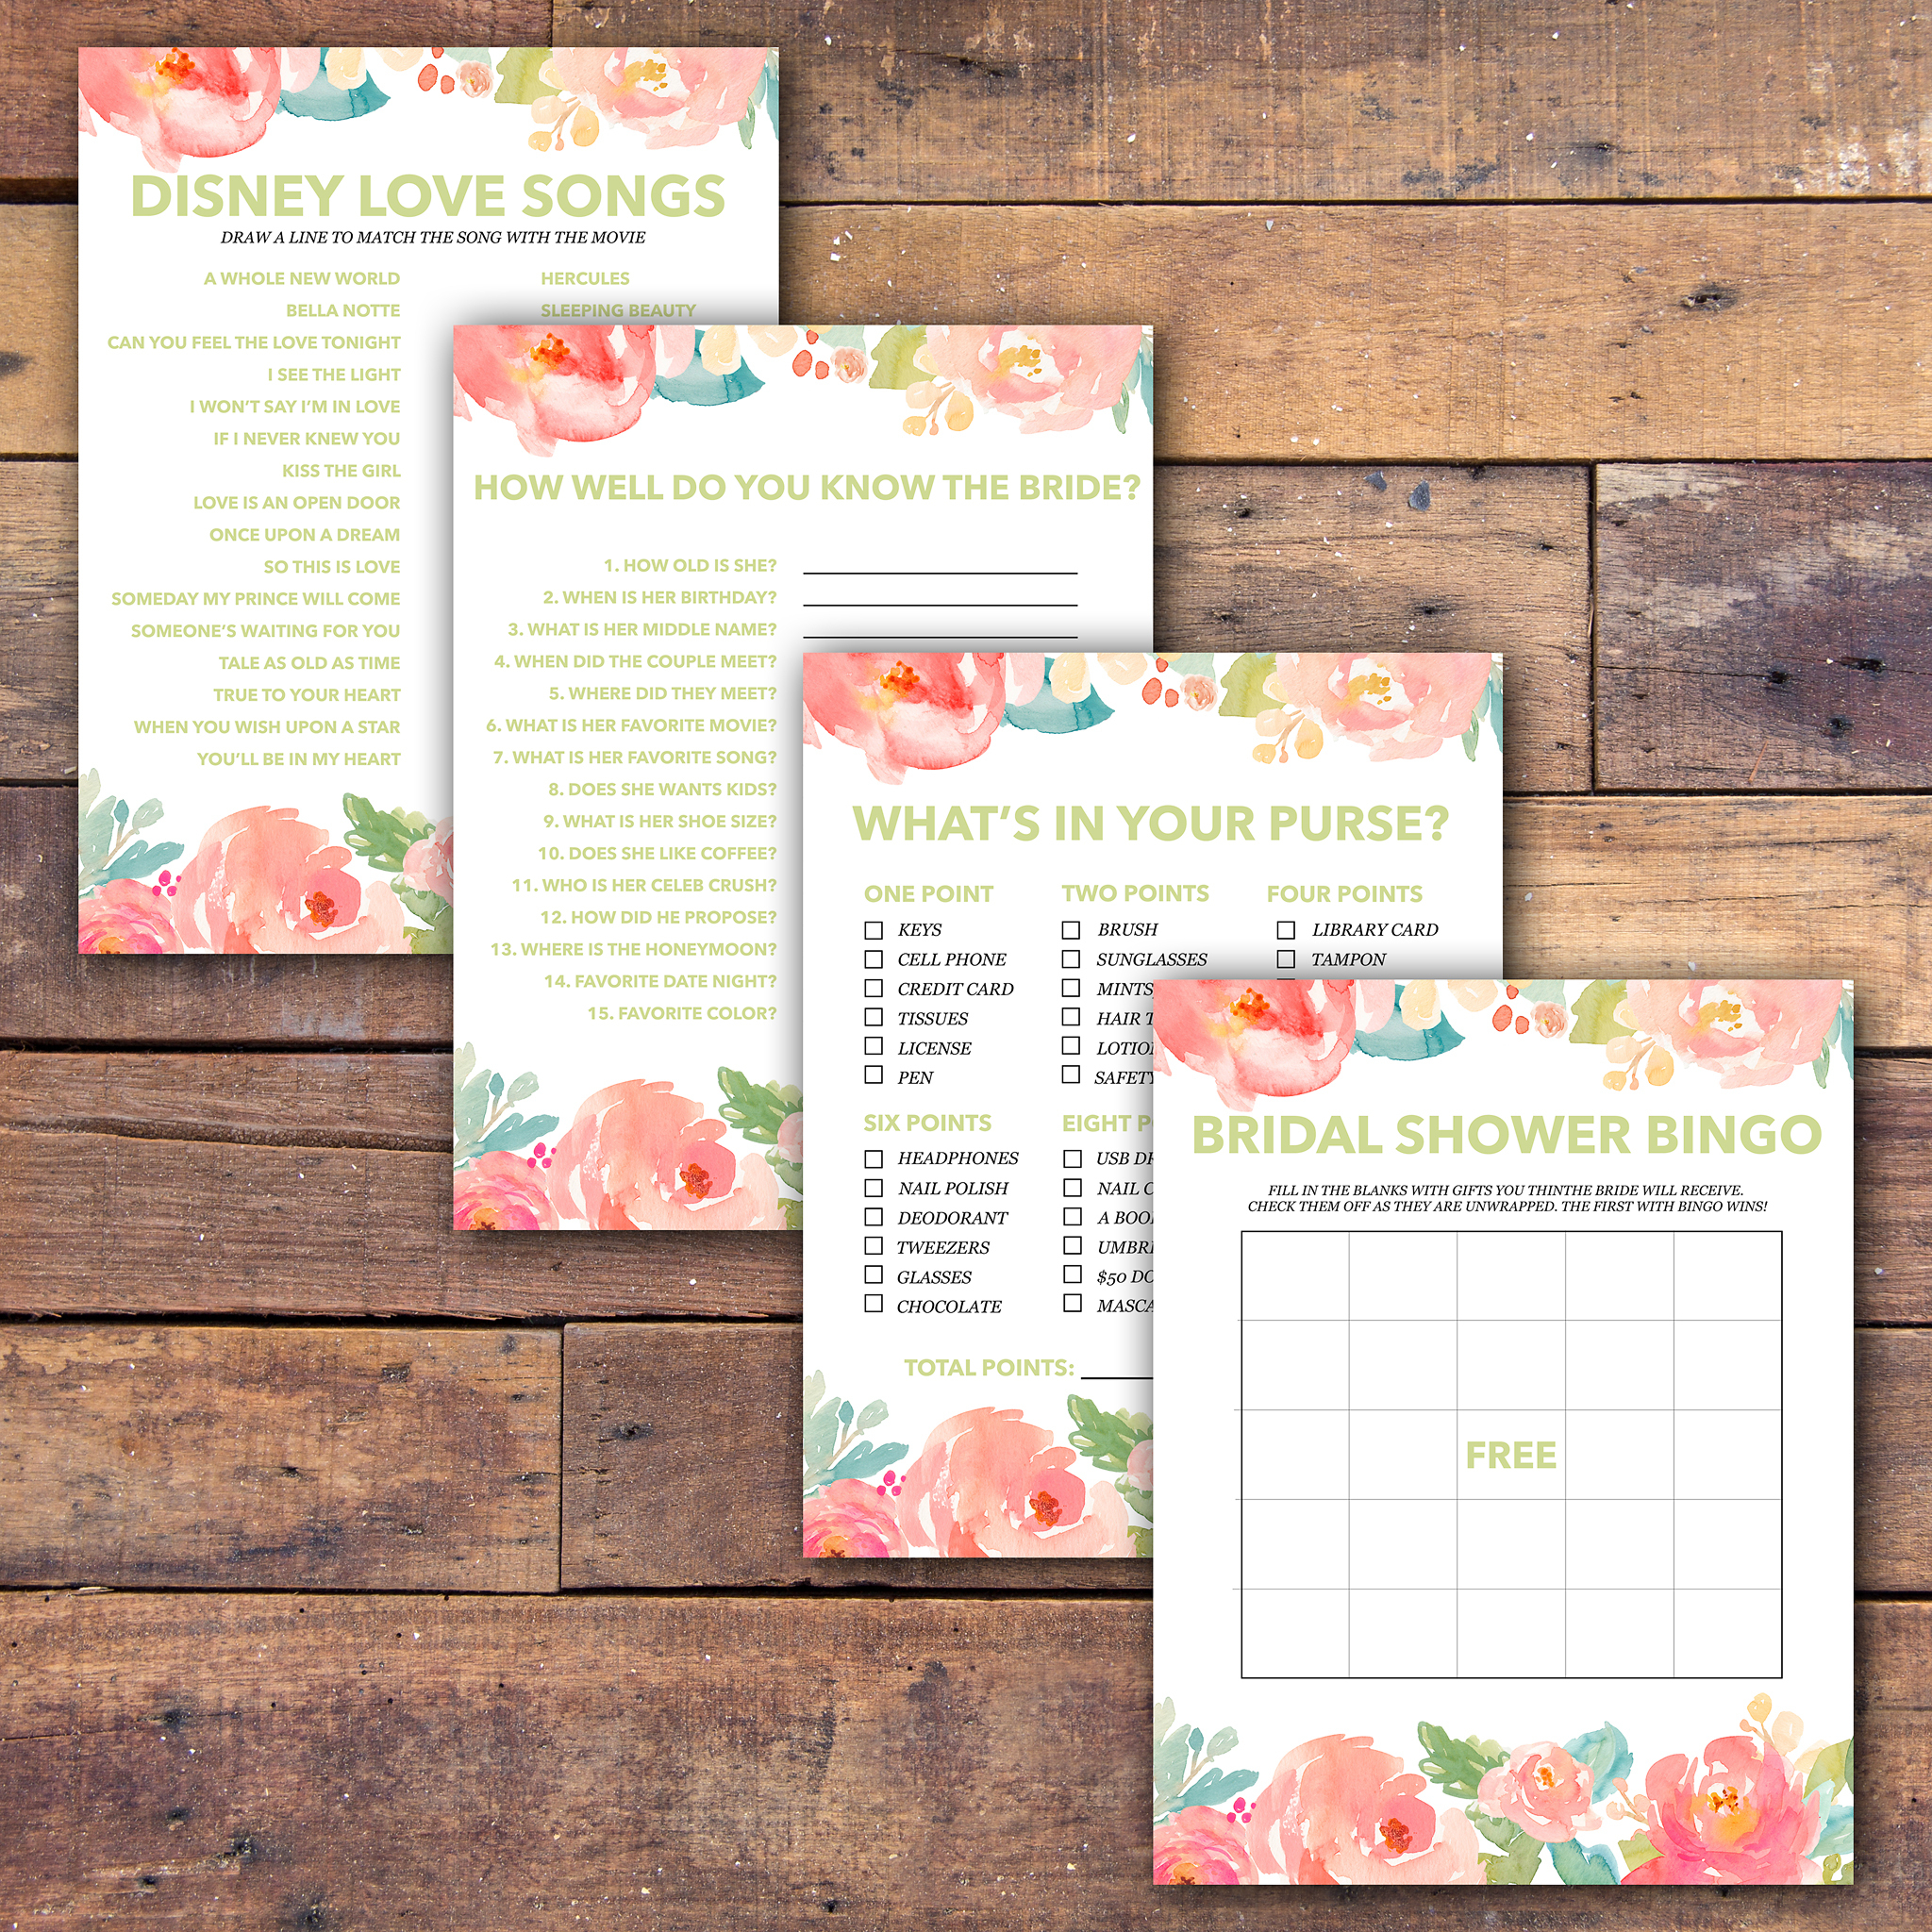 Bridal Shower Games Free Printable - - Samantha Jean Photograhy - Free Printable Bridal Shower Games